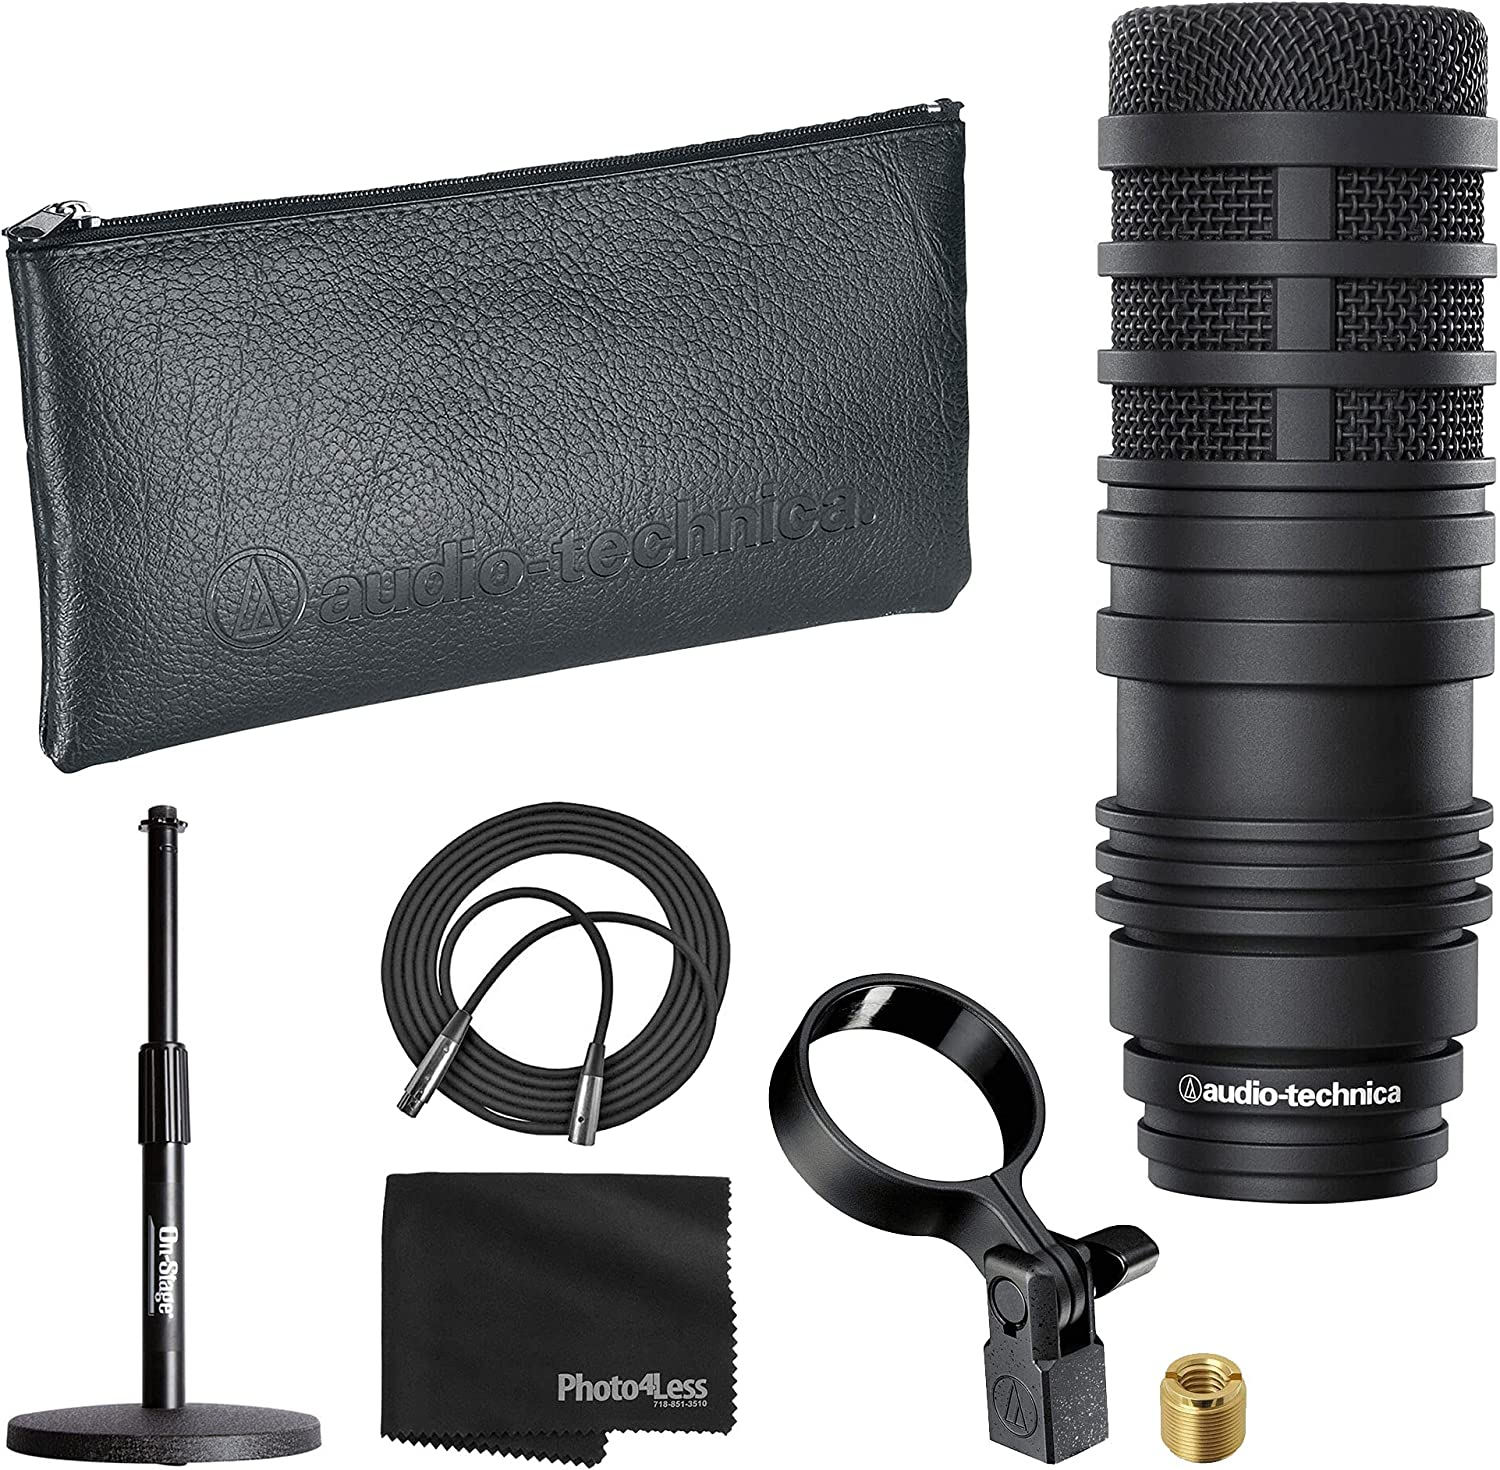 Sales Audio-Technica Max 90% OFF BP40 Large Diaphragm Broadcast Microphone Dynamic